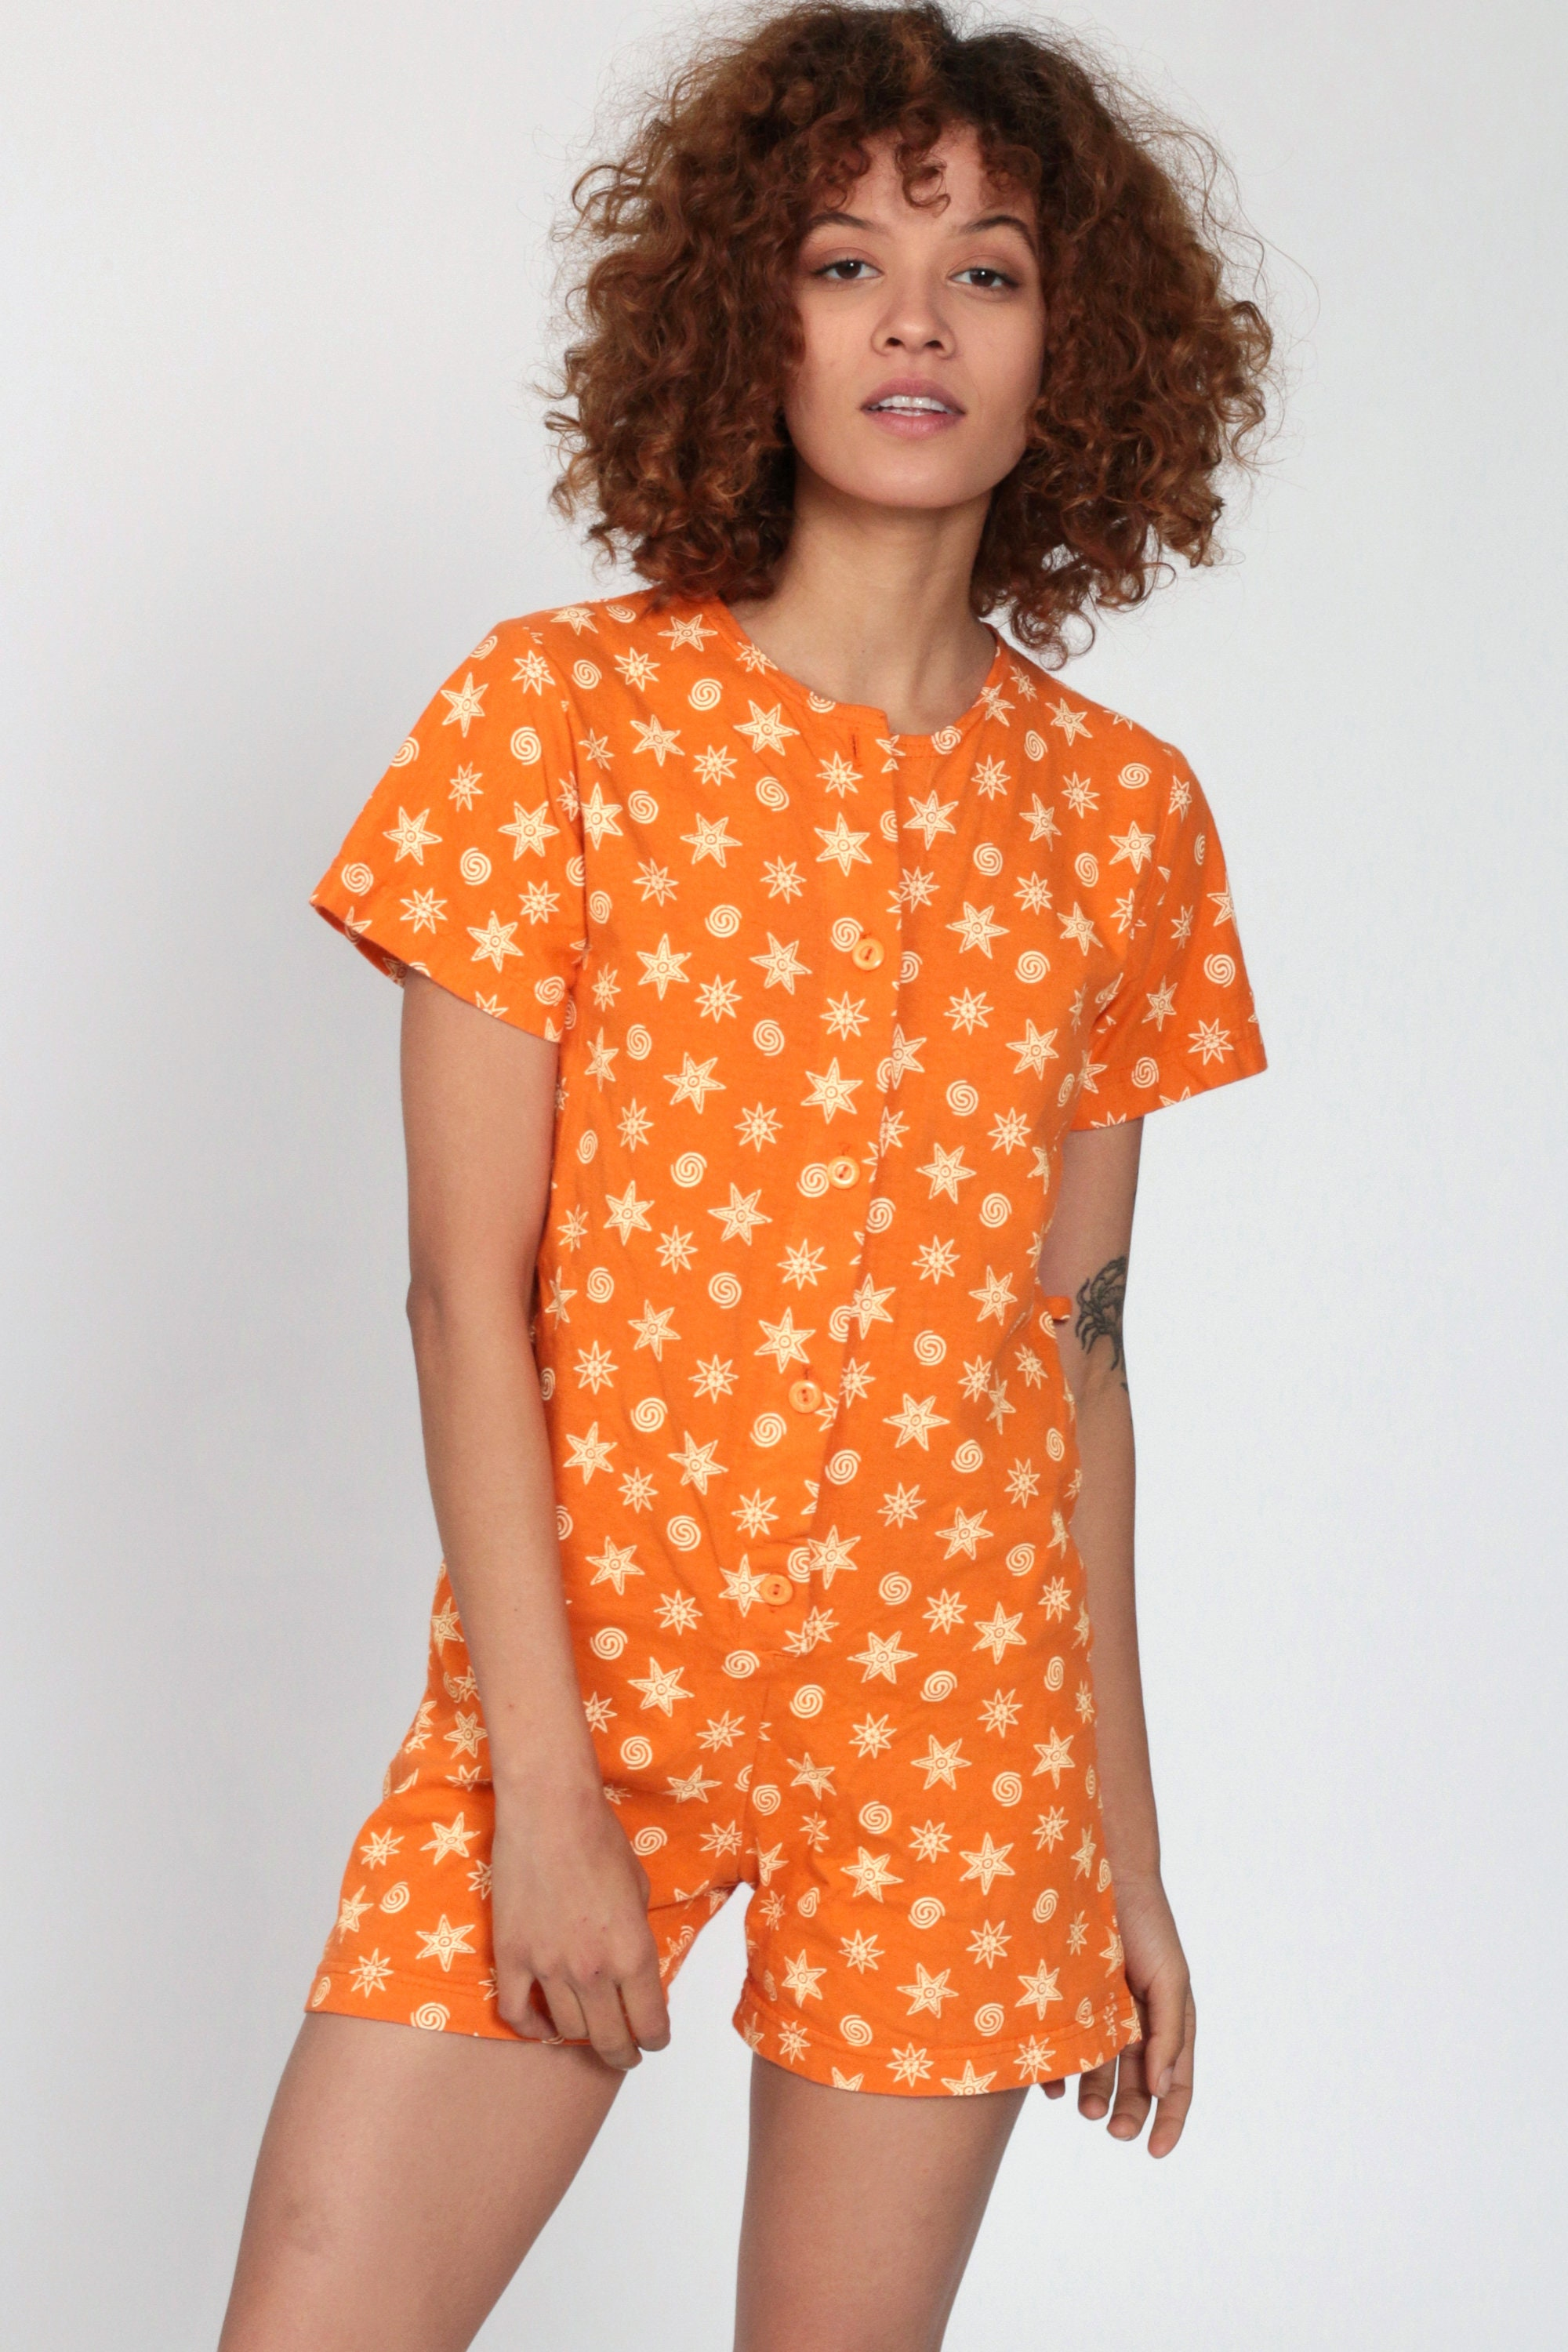 90s Playsuit Orange Star Romper Outfit One Piece Woman ...